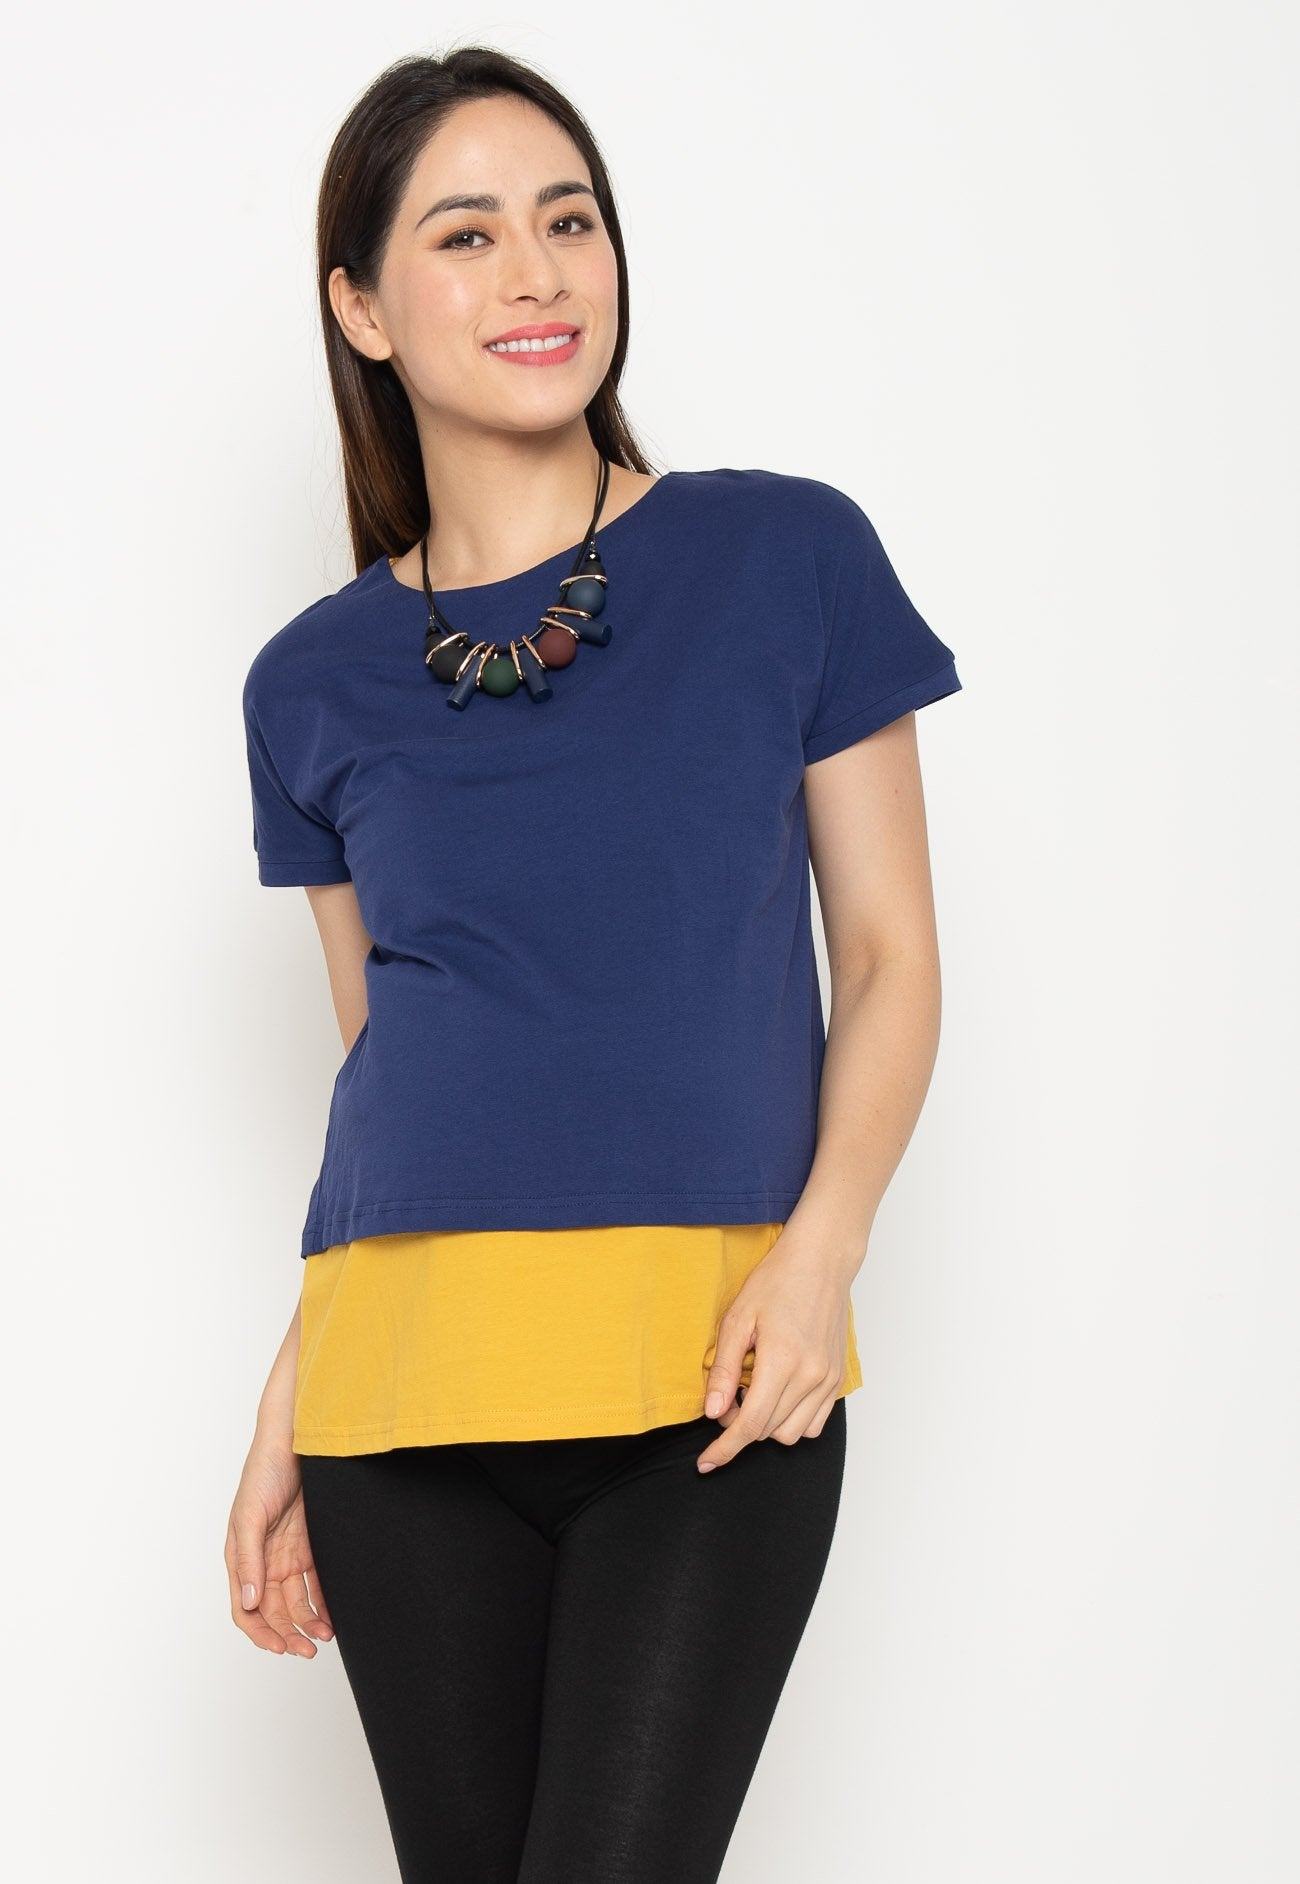 ad8af0651c4c3 Two Tone Layered Nursing Top in Navy and Yellow – Jump Eat Cry